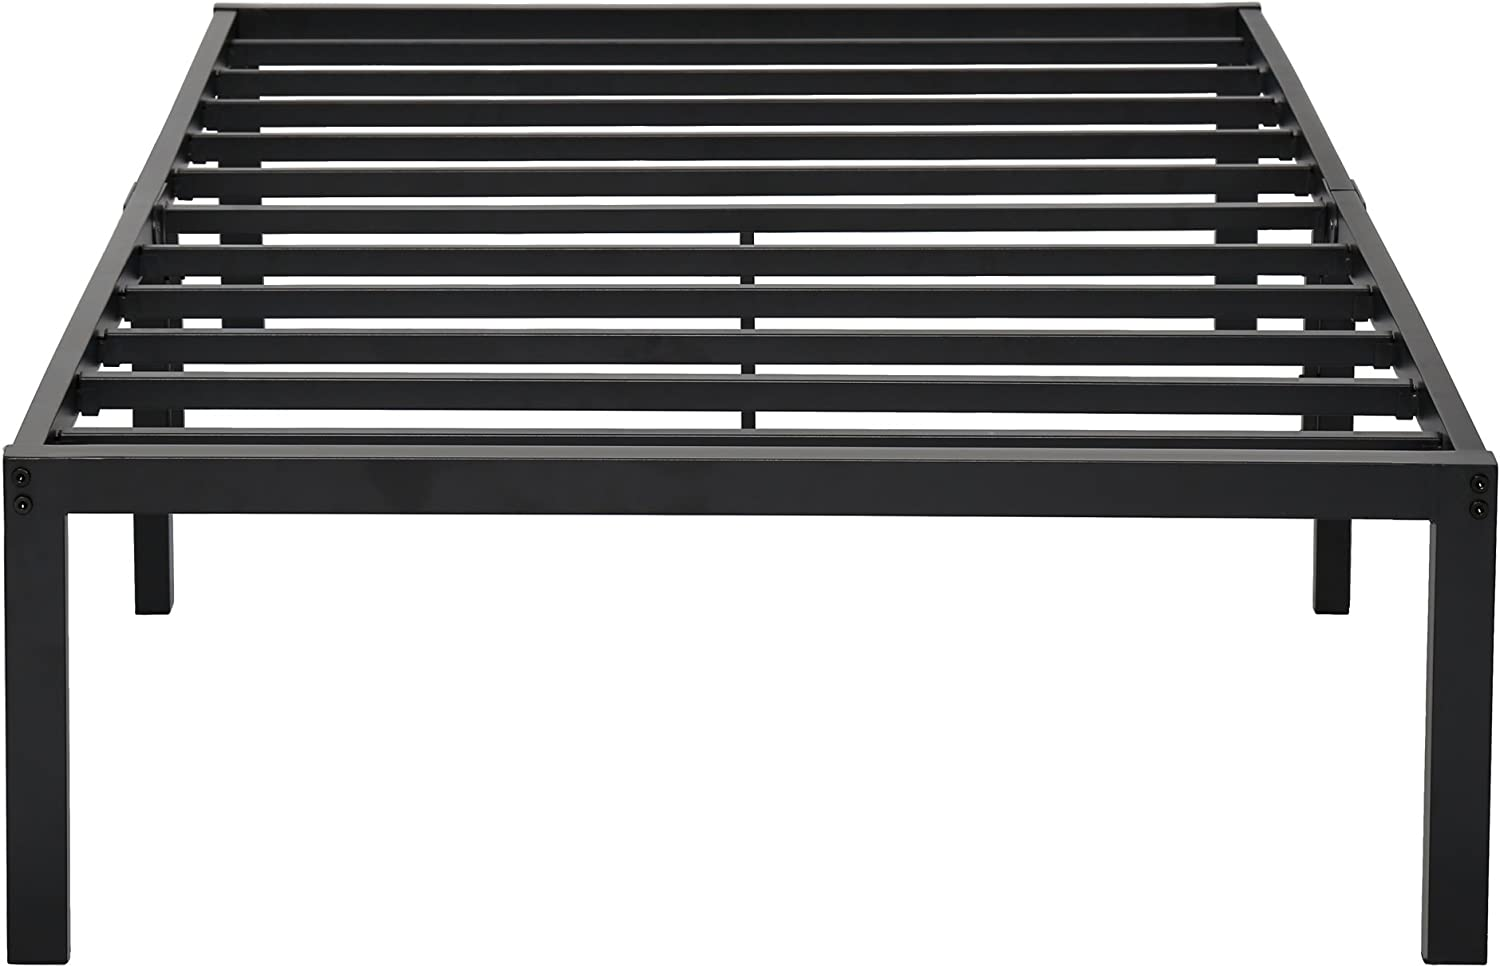 Bolt-On 76 Twin Full Rails with 2 Crossties By Hollywood Bed Frame